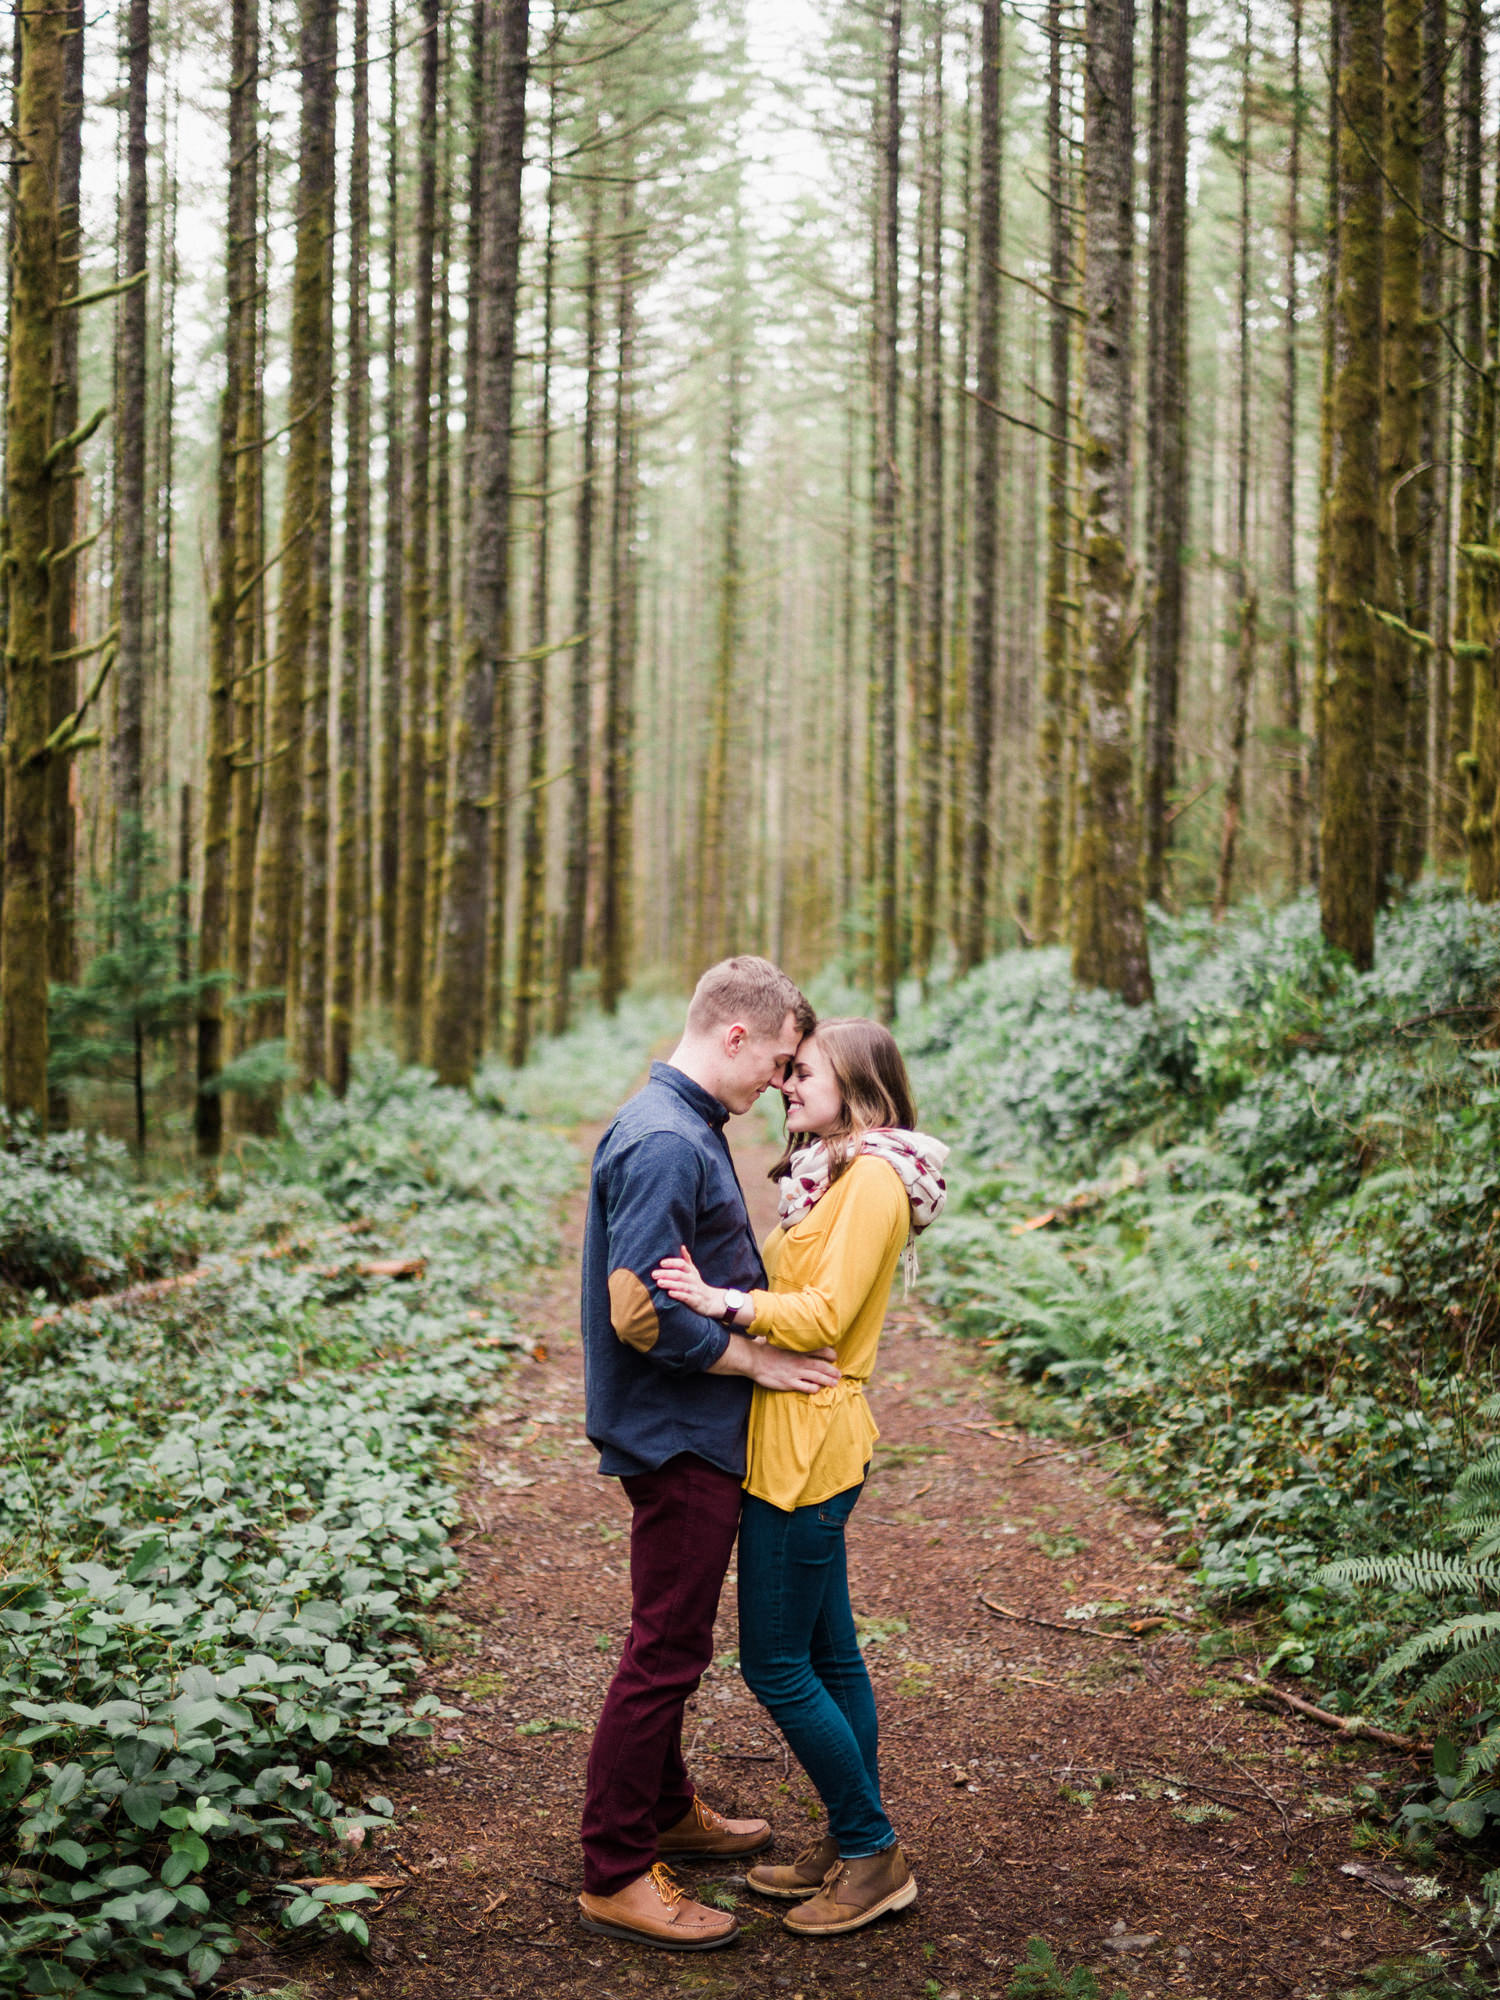 018-snoqualmie-mountain-engagement-session-seattle-film-wedding-photographer-ryan-flynn.jpg